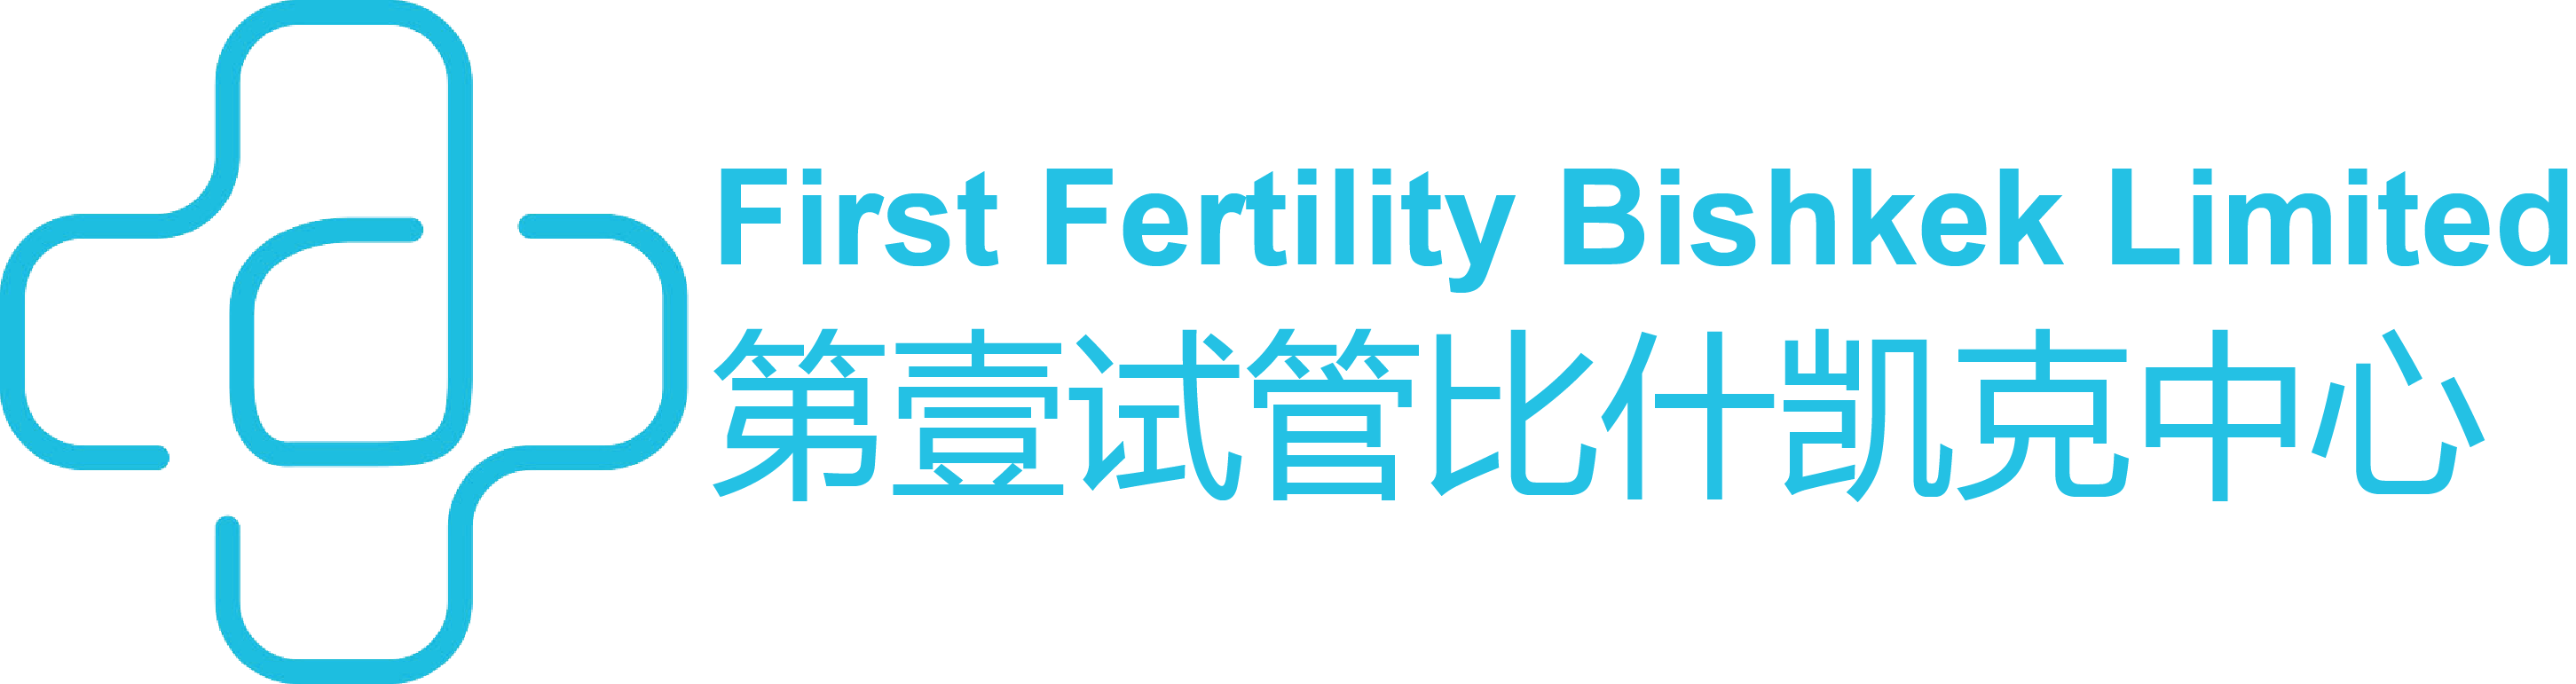 First Fertility Bishkek Limited